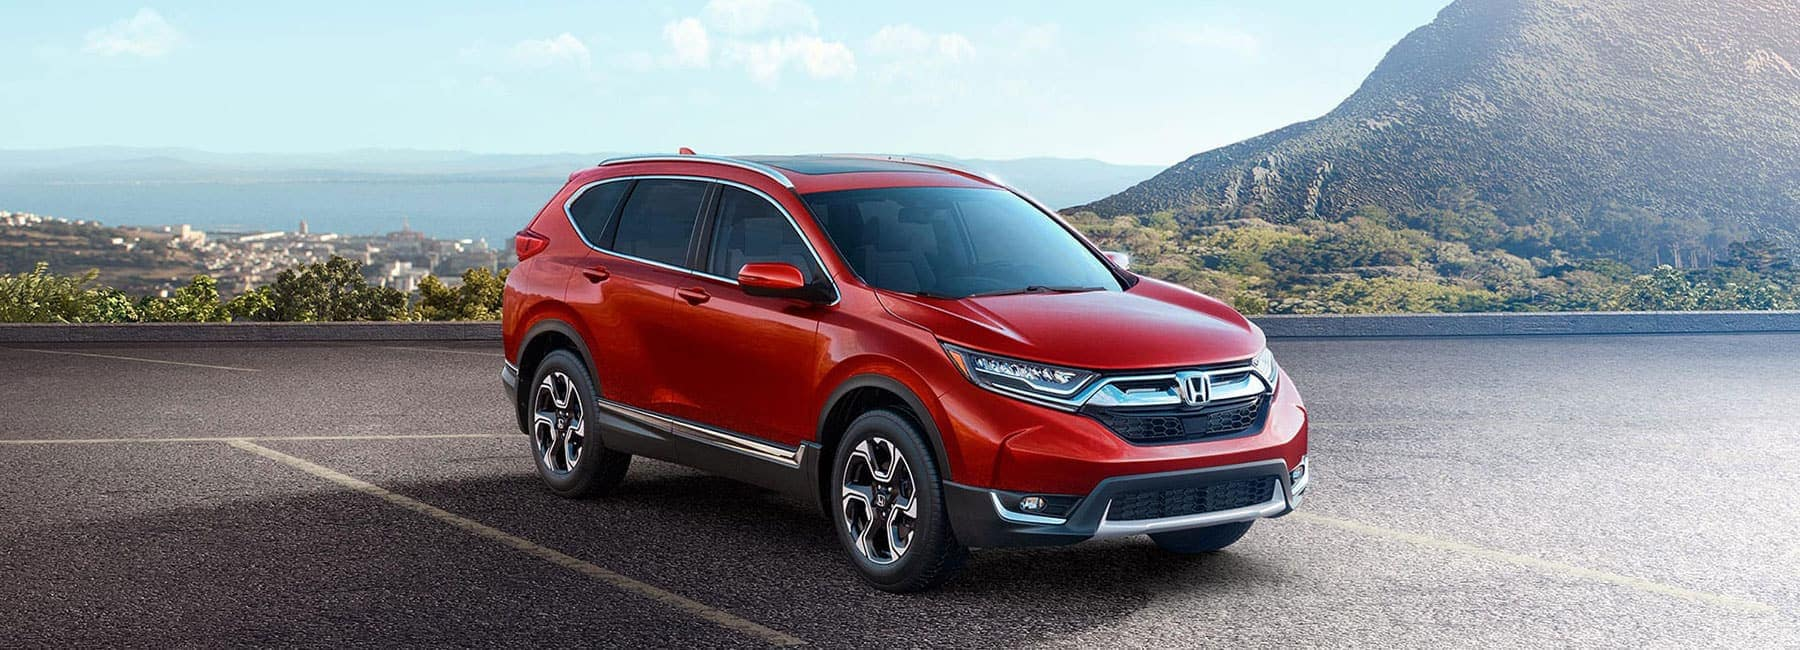 2019 honda cr-v lease